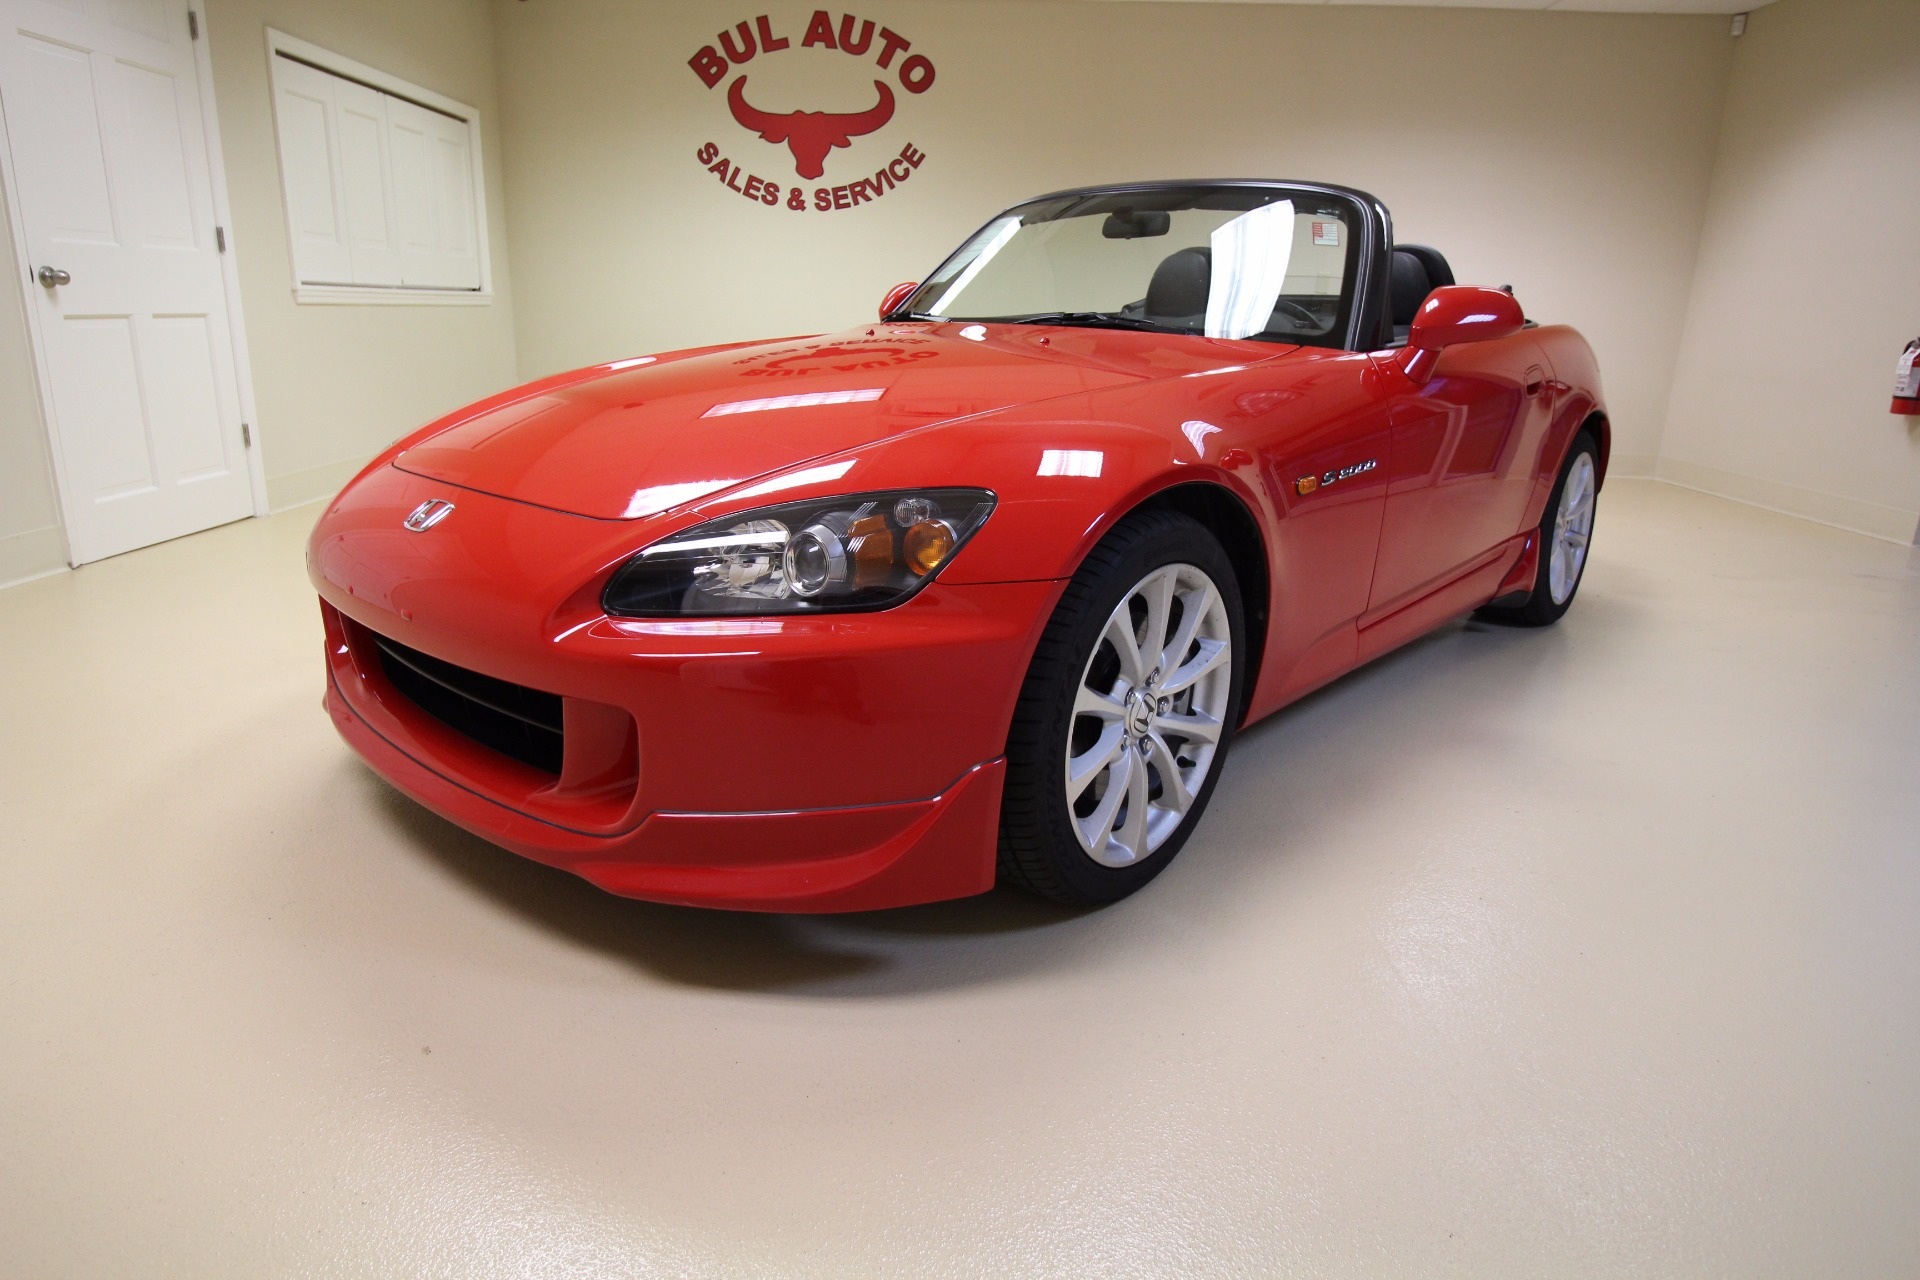 2007 honda s2000 roadster stock 17163 for sale near albany ny ny honda dealer for sale in. Black Bedroom Furniture Sets. Home Design Ideas